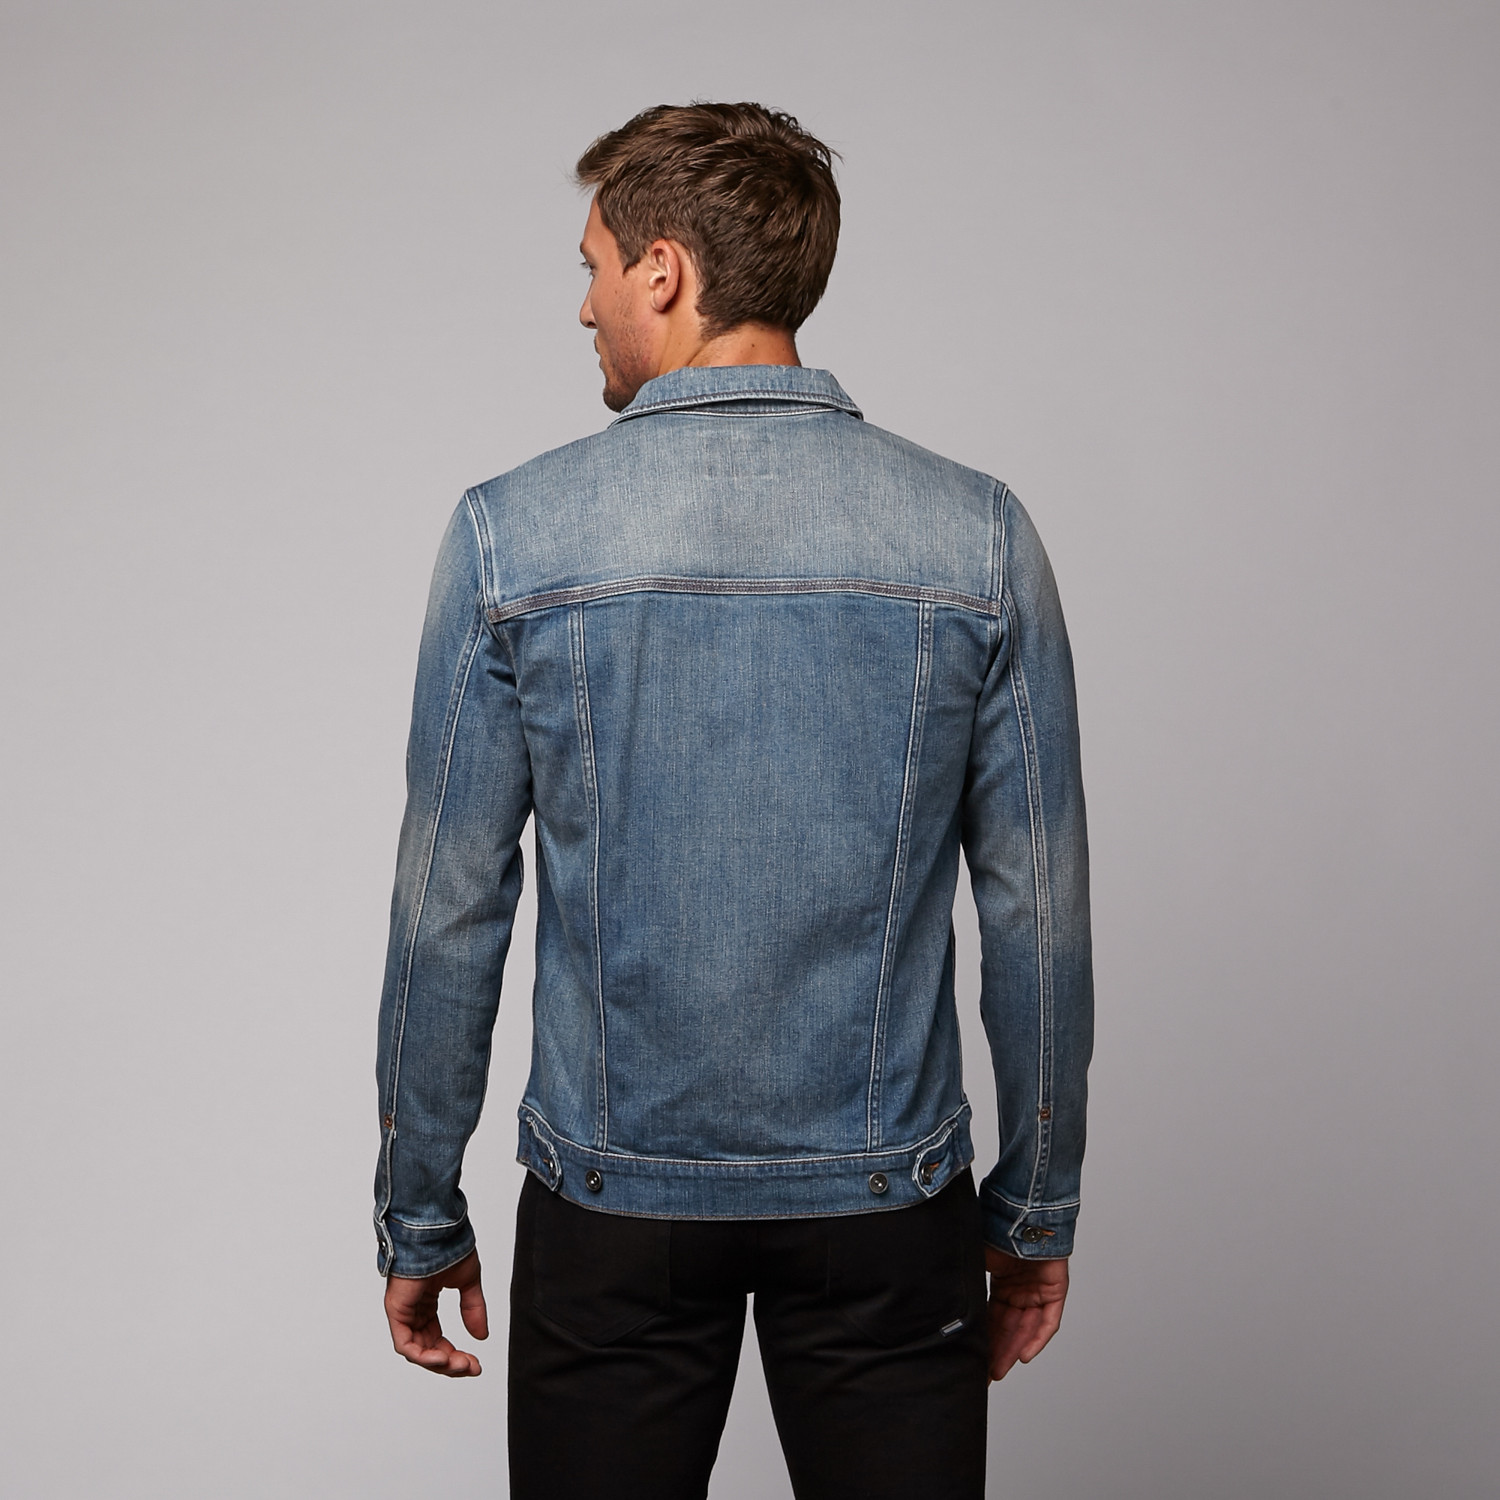 Hook Denim Jacket // Washed Out (XS) - WeSC - Touch of Modern